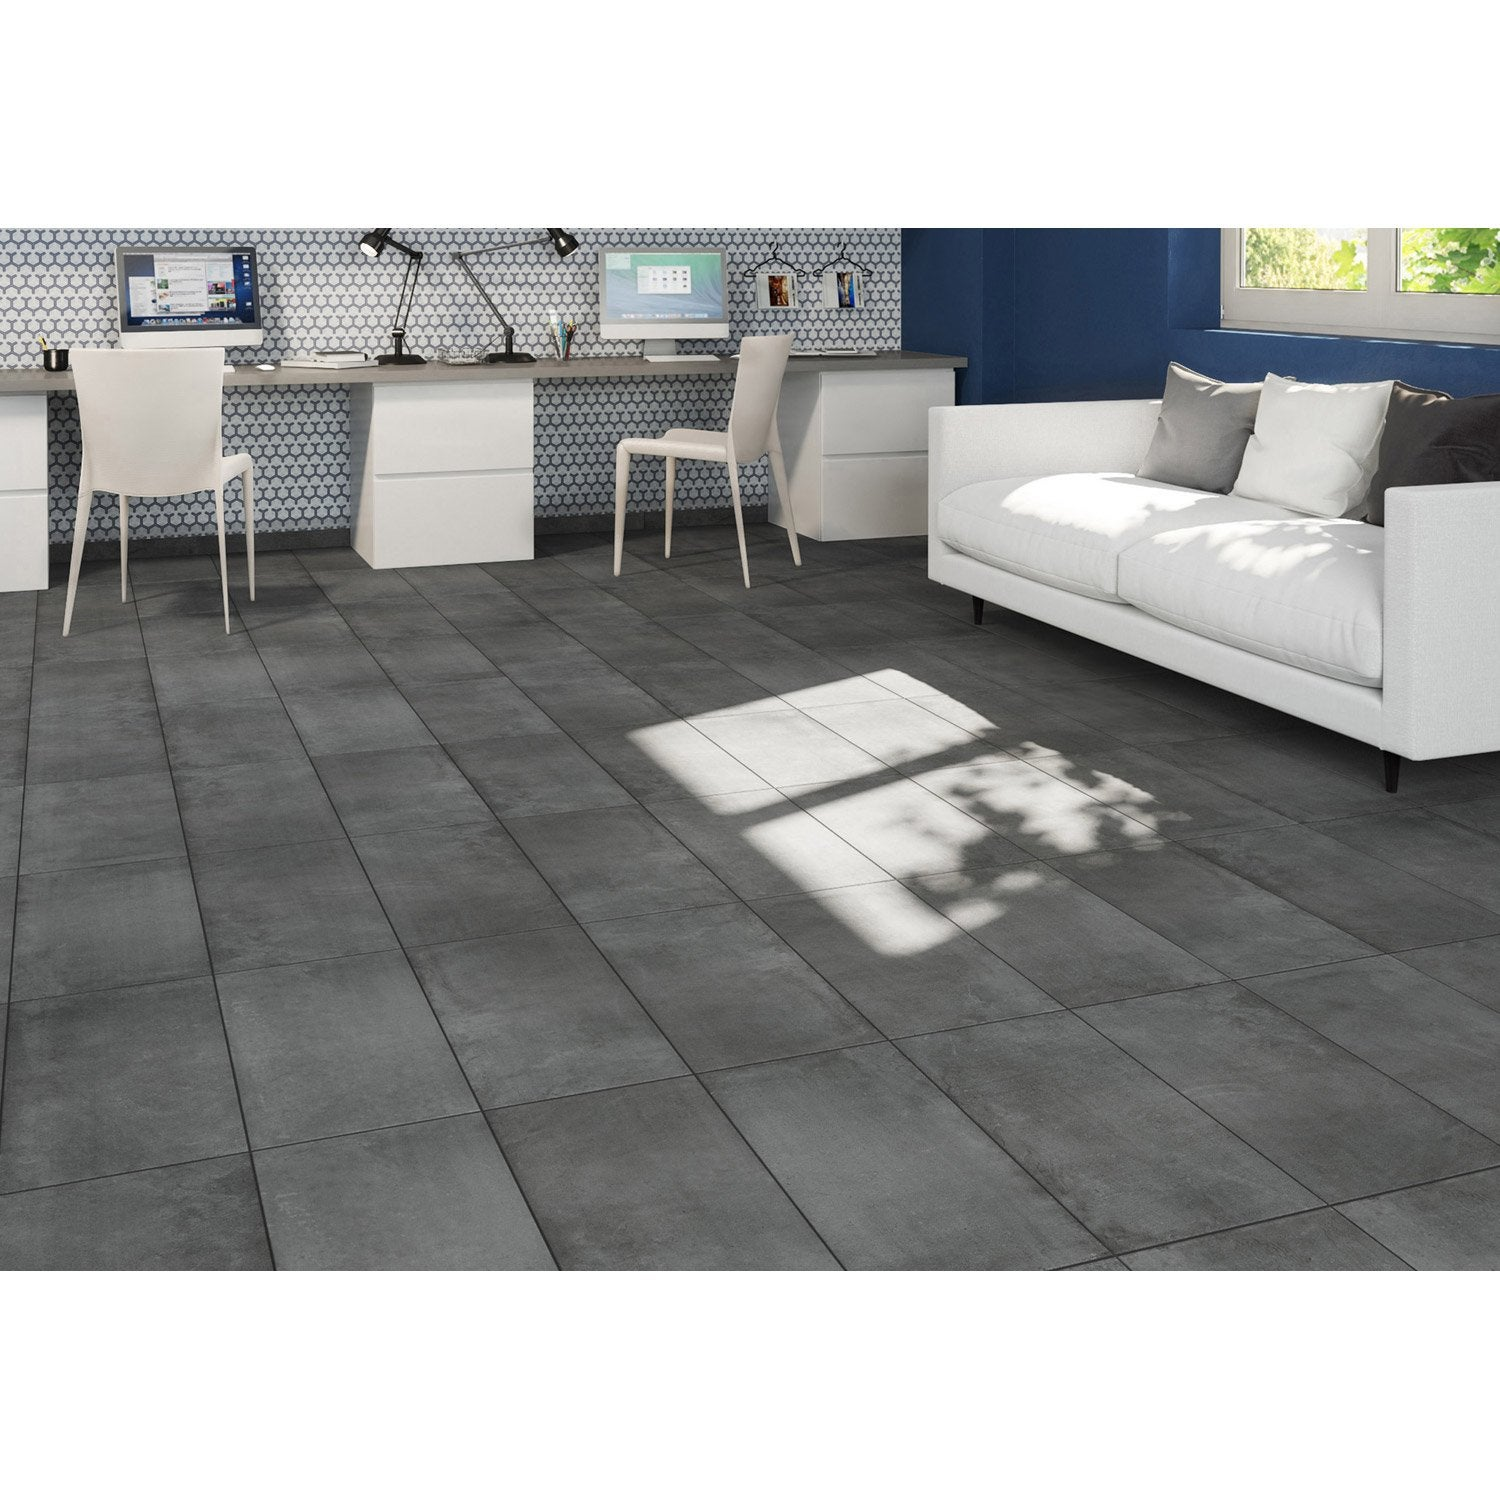 Carrelage sol noir brillant gallery of design carrelage for Carrelage sol noir